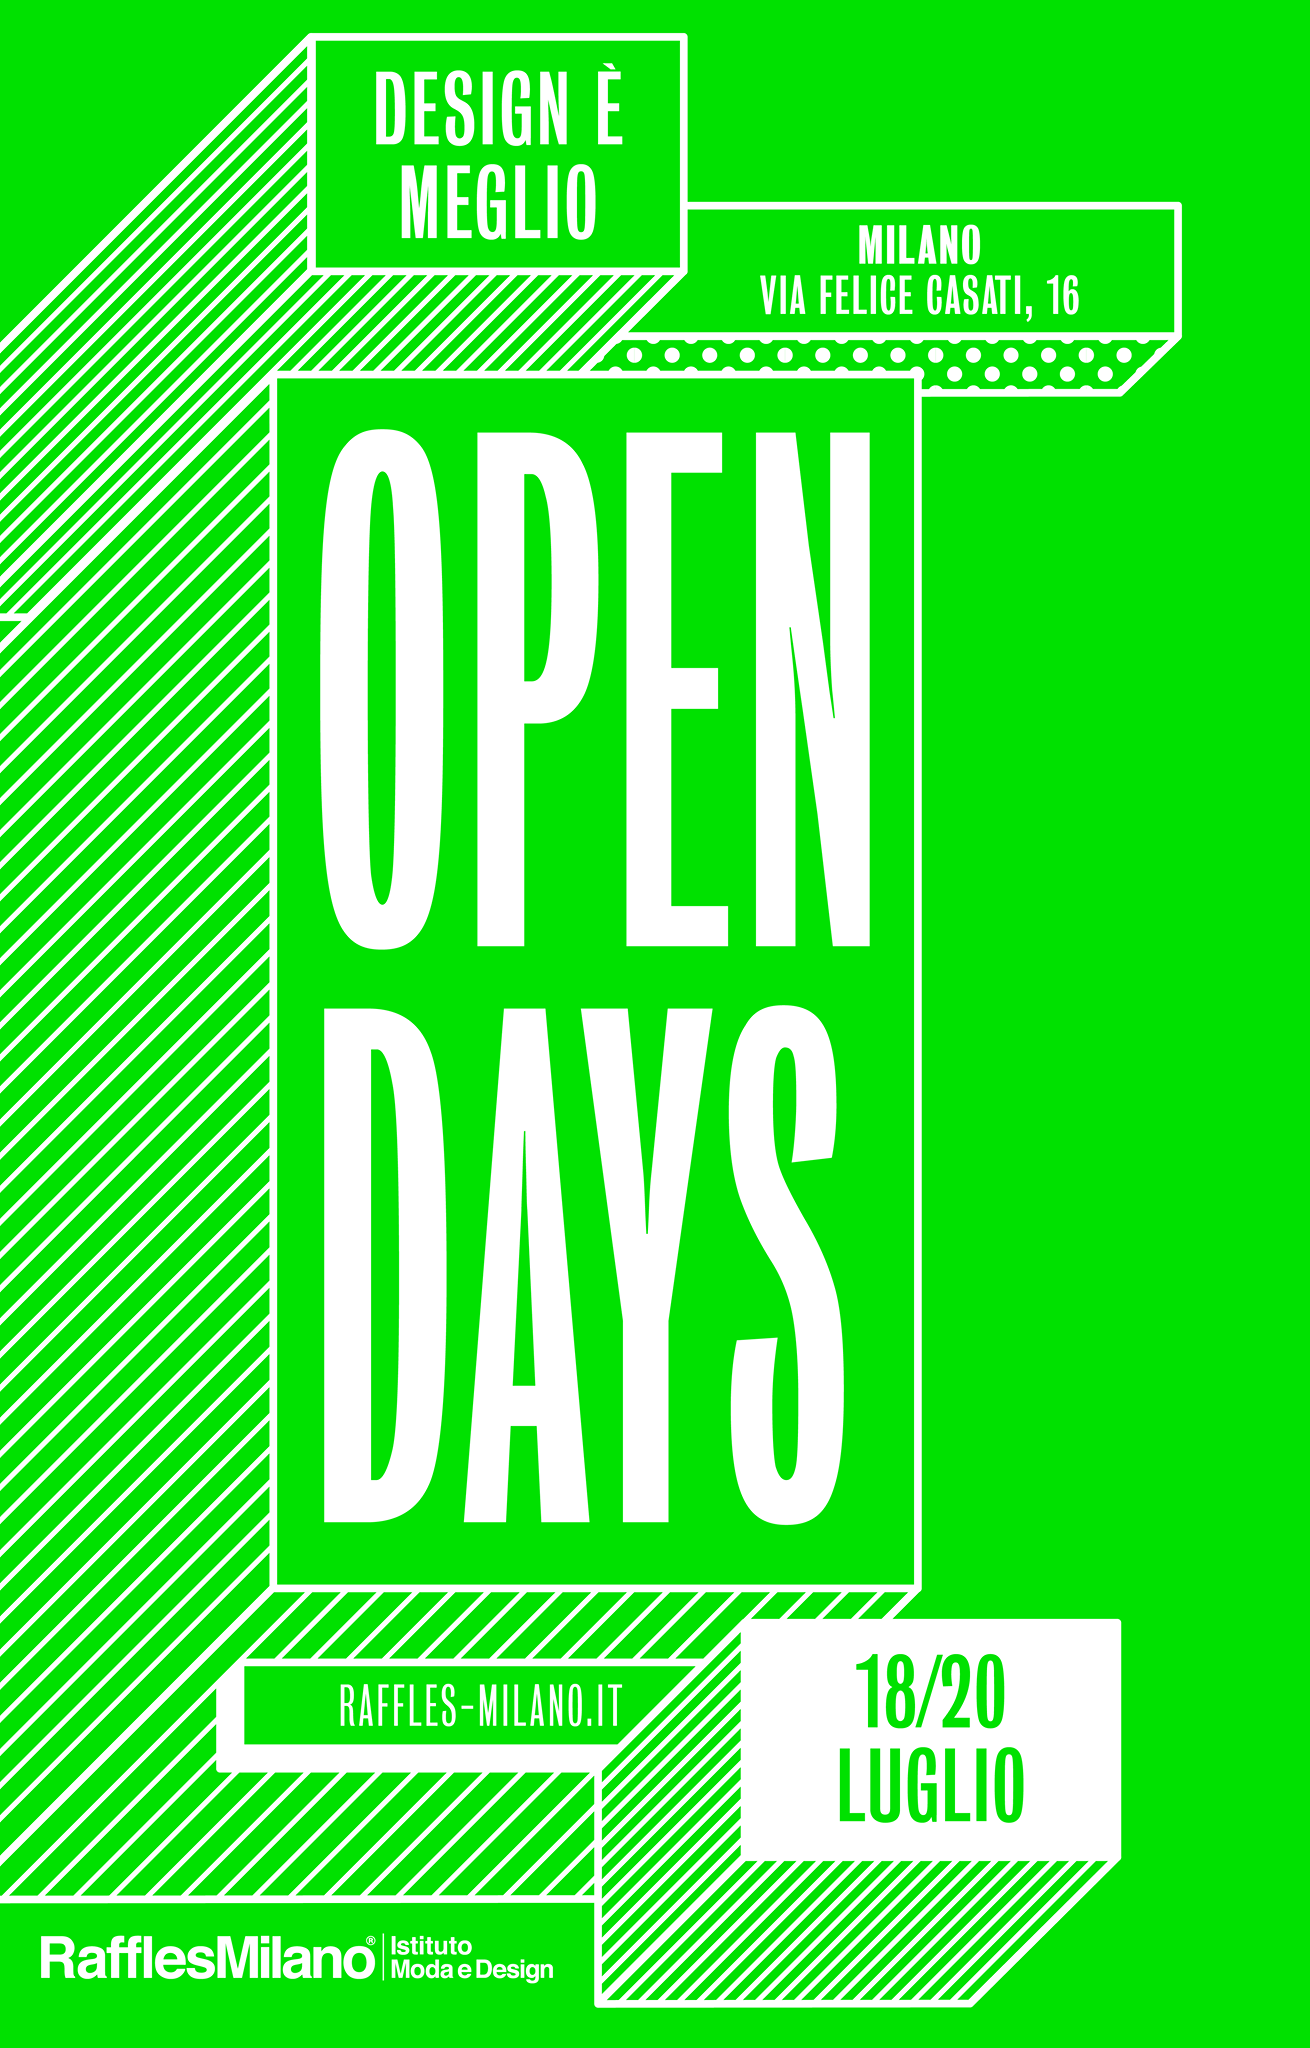 Oggi open days raffles milano sprea fotografia news for Moda e design milano